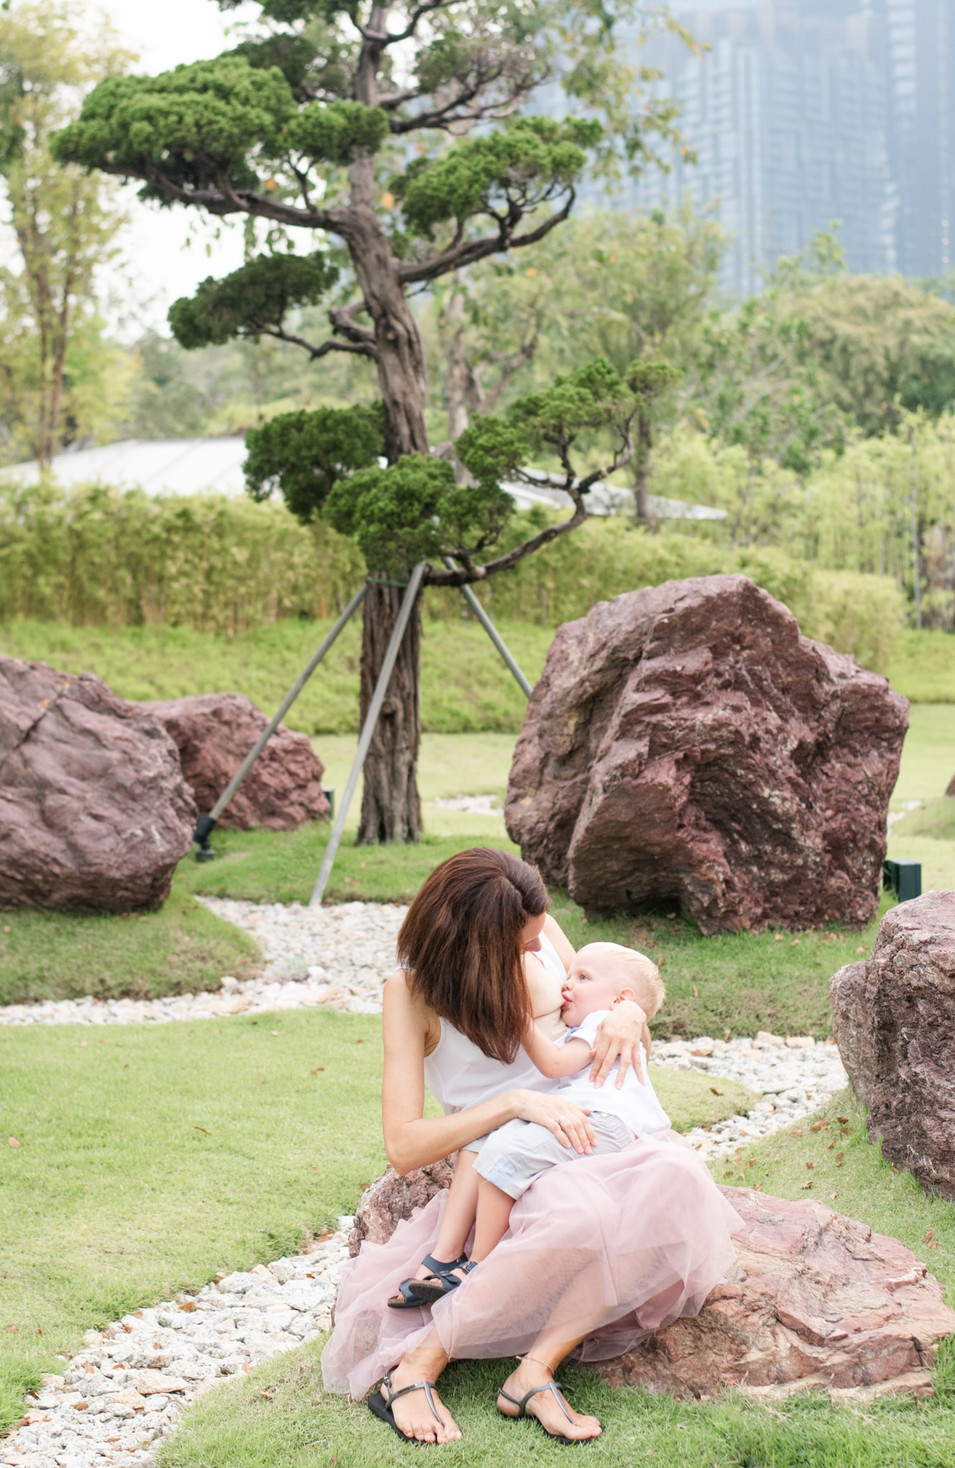 Singapore Lifestyle Photography | Nic Imai Photography | outdoor breastfeeding photography Gardens By The Bay Singapore